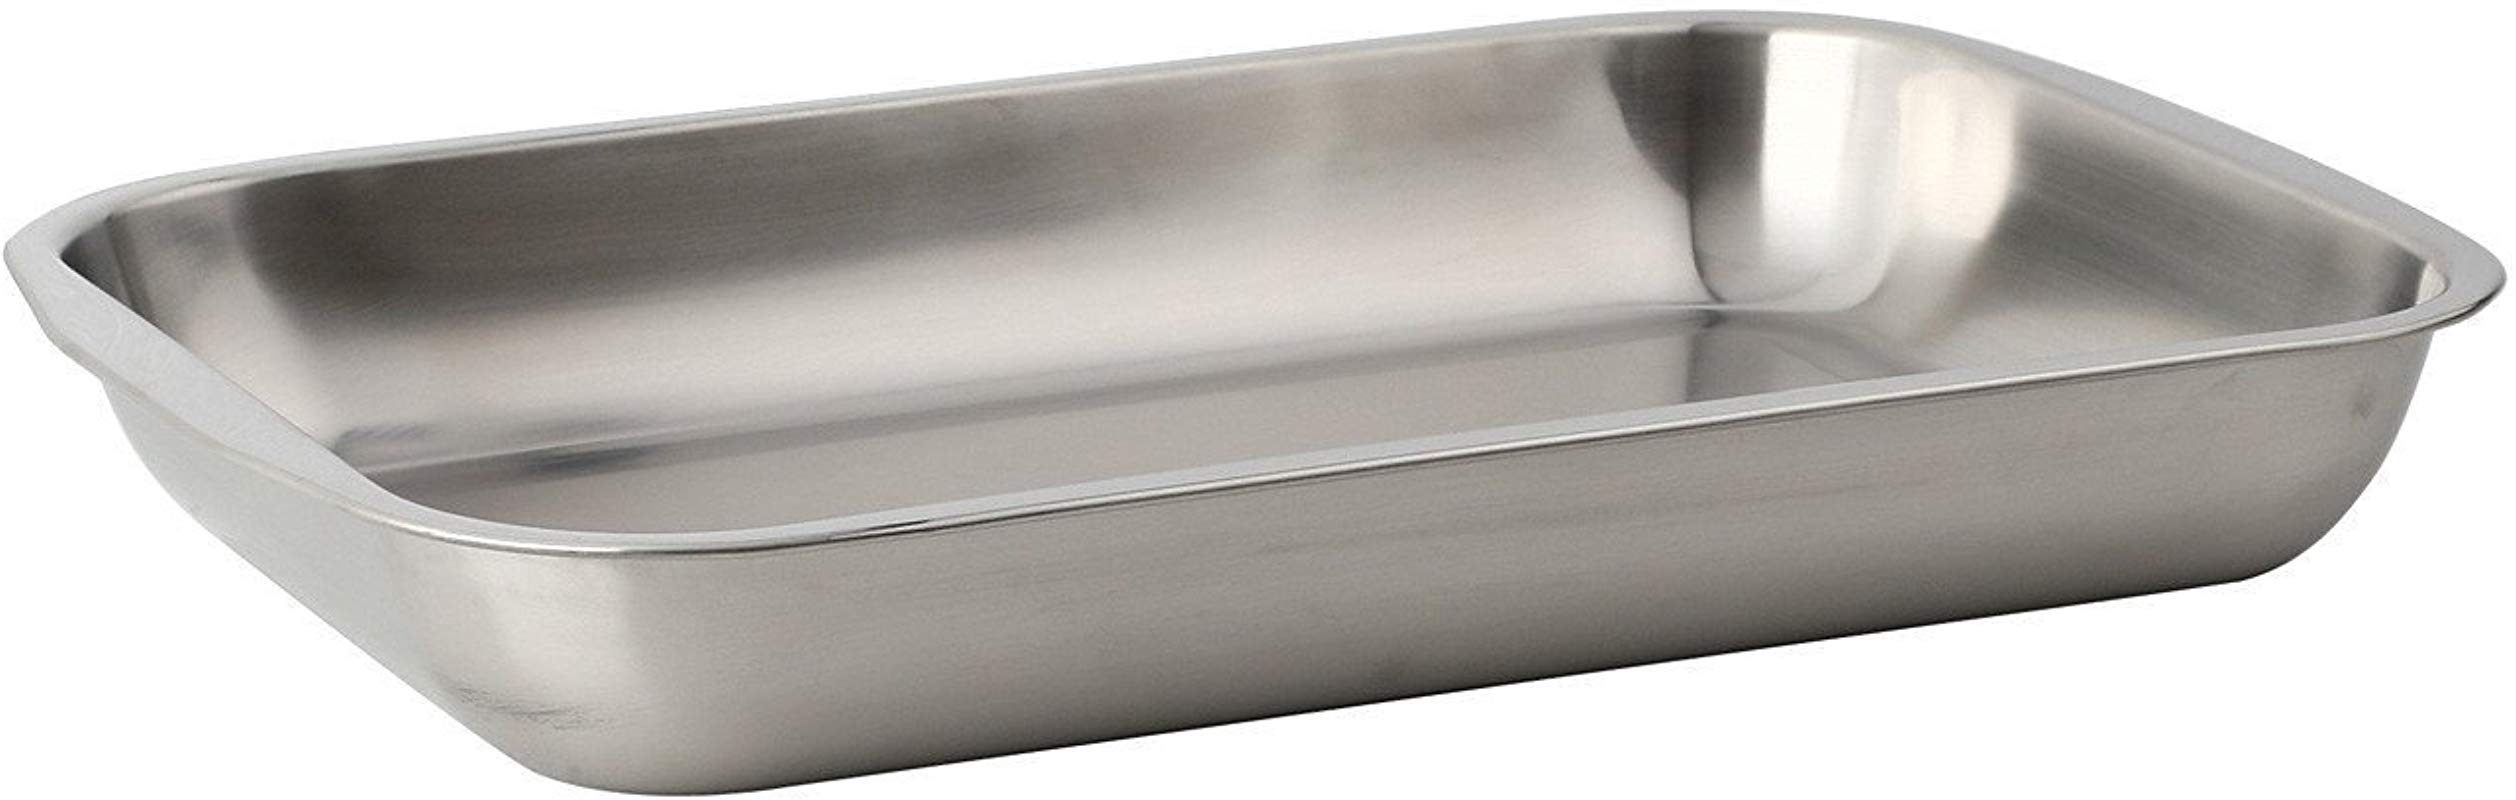 9 X 13 Stainless Steel Cake Bake Pan